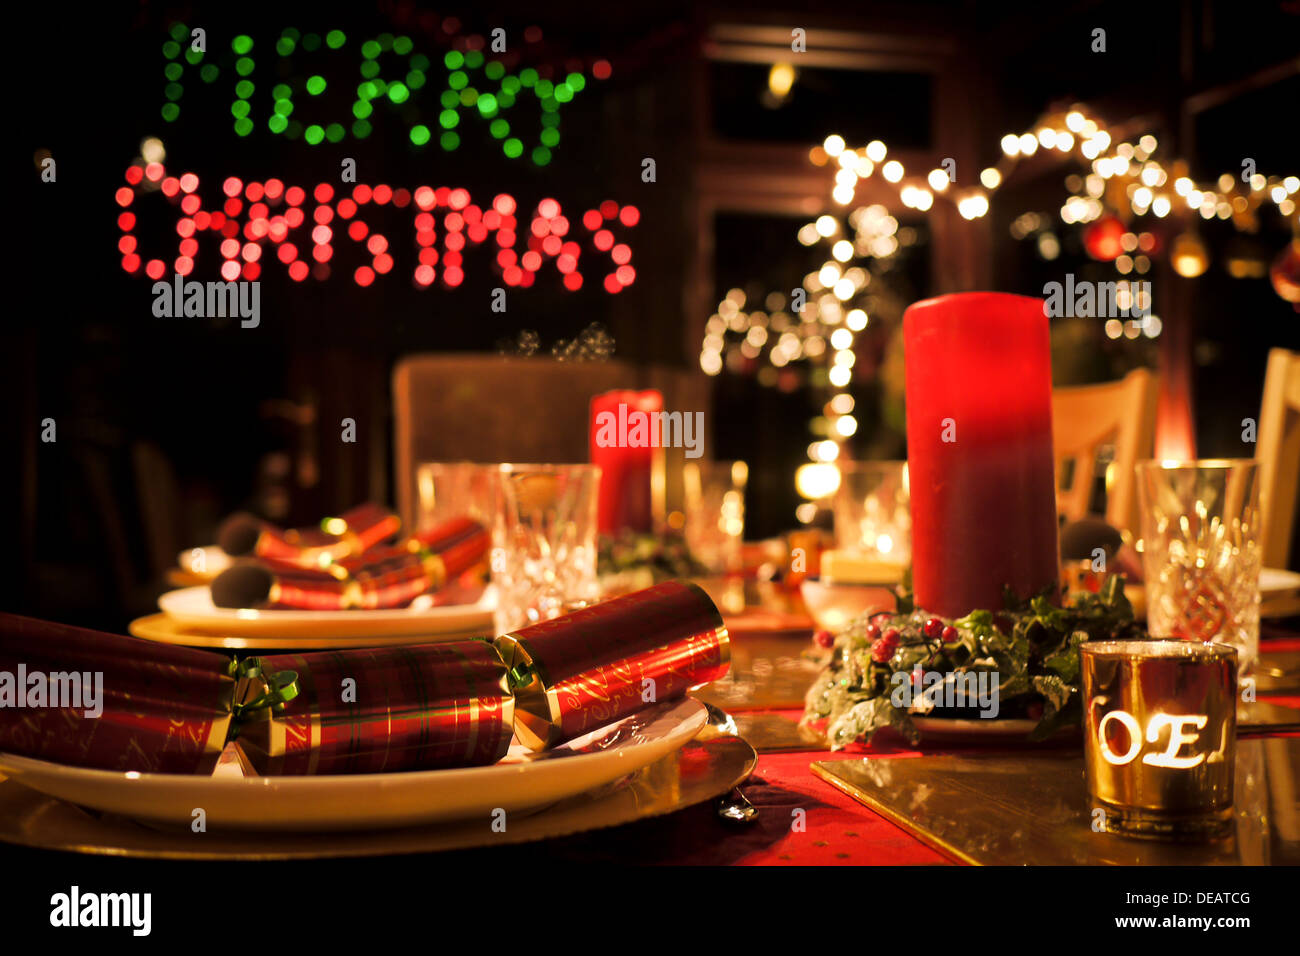 Fully laid Christmas table with candles and Merry Christmas in lights blurred in the background - Stock Image